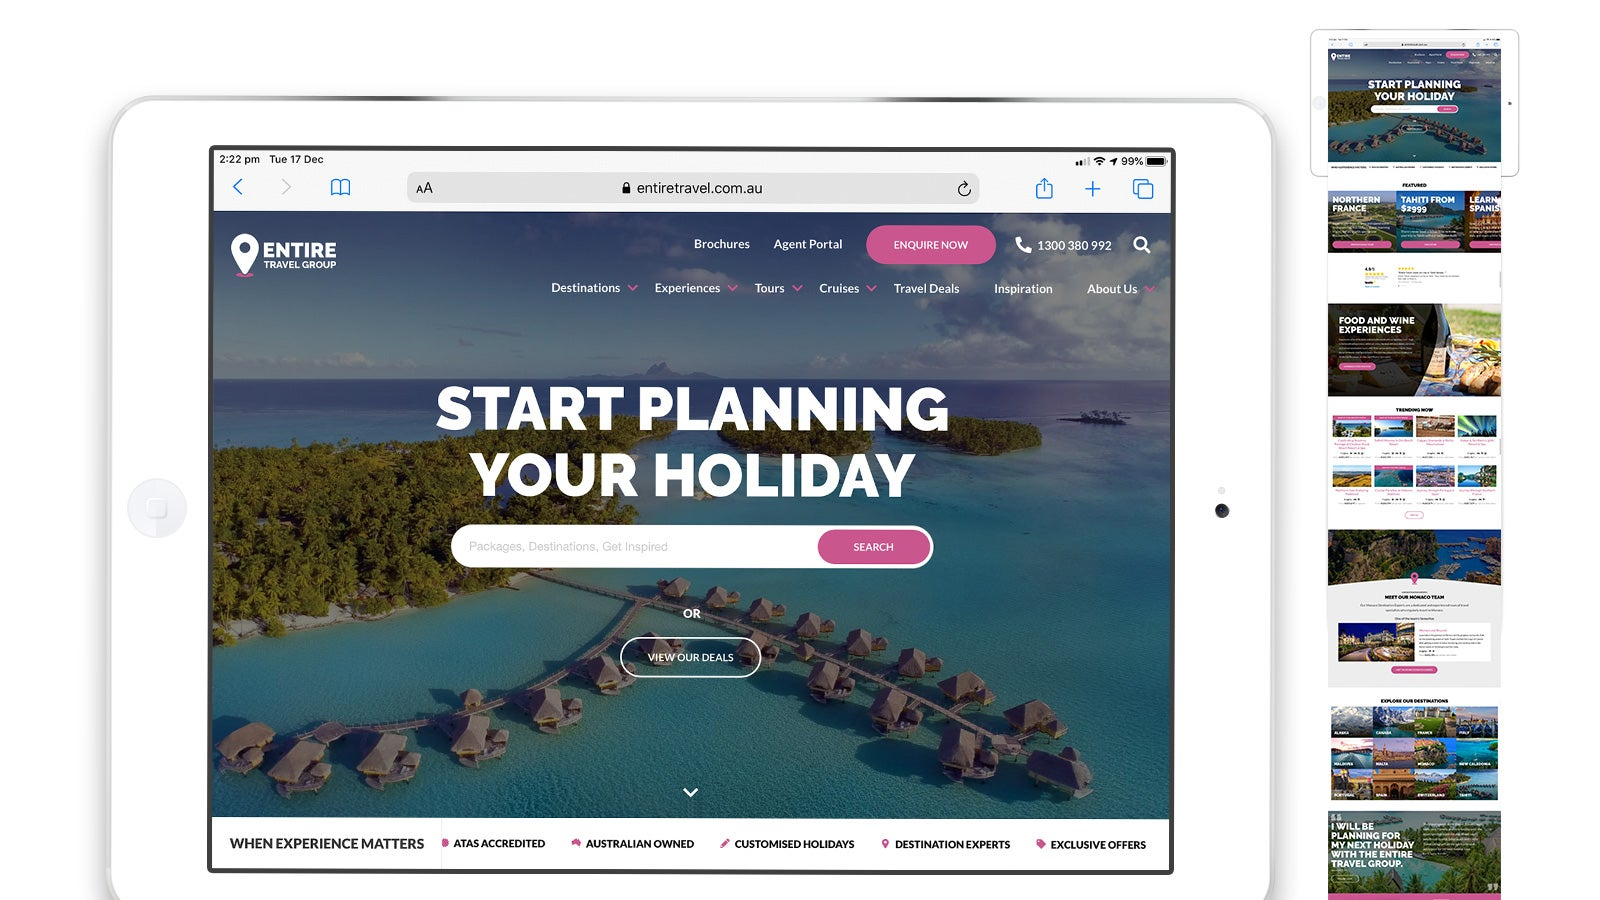 Entire Travel Group gallery image showing the website on an iPad